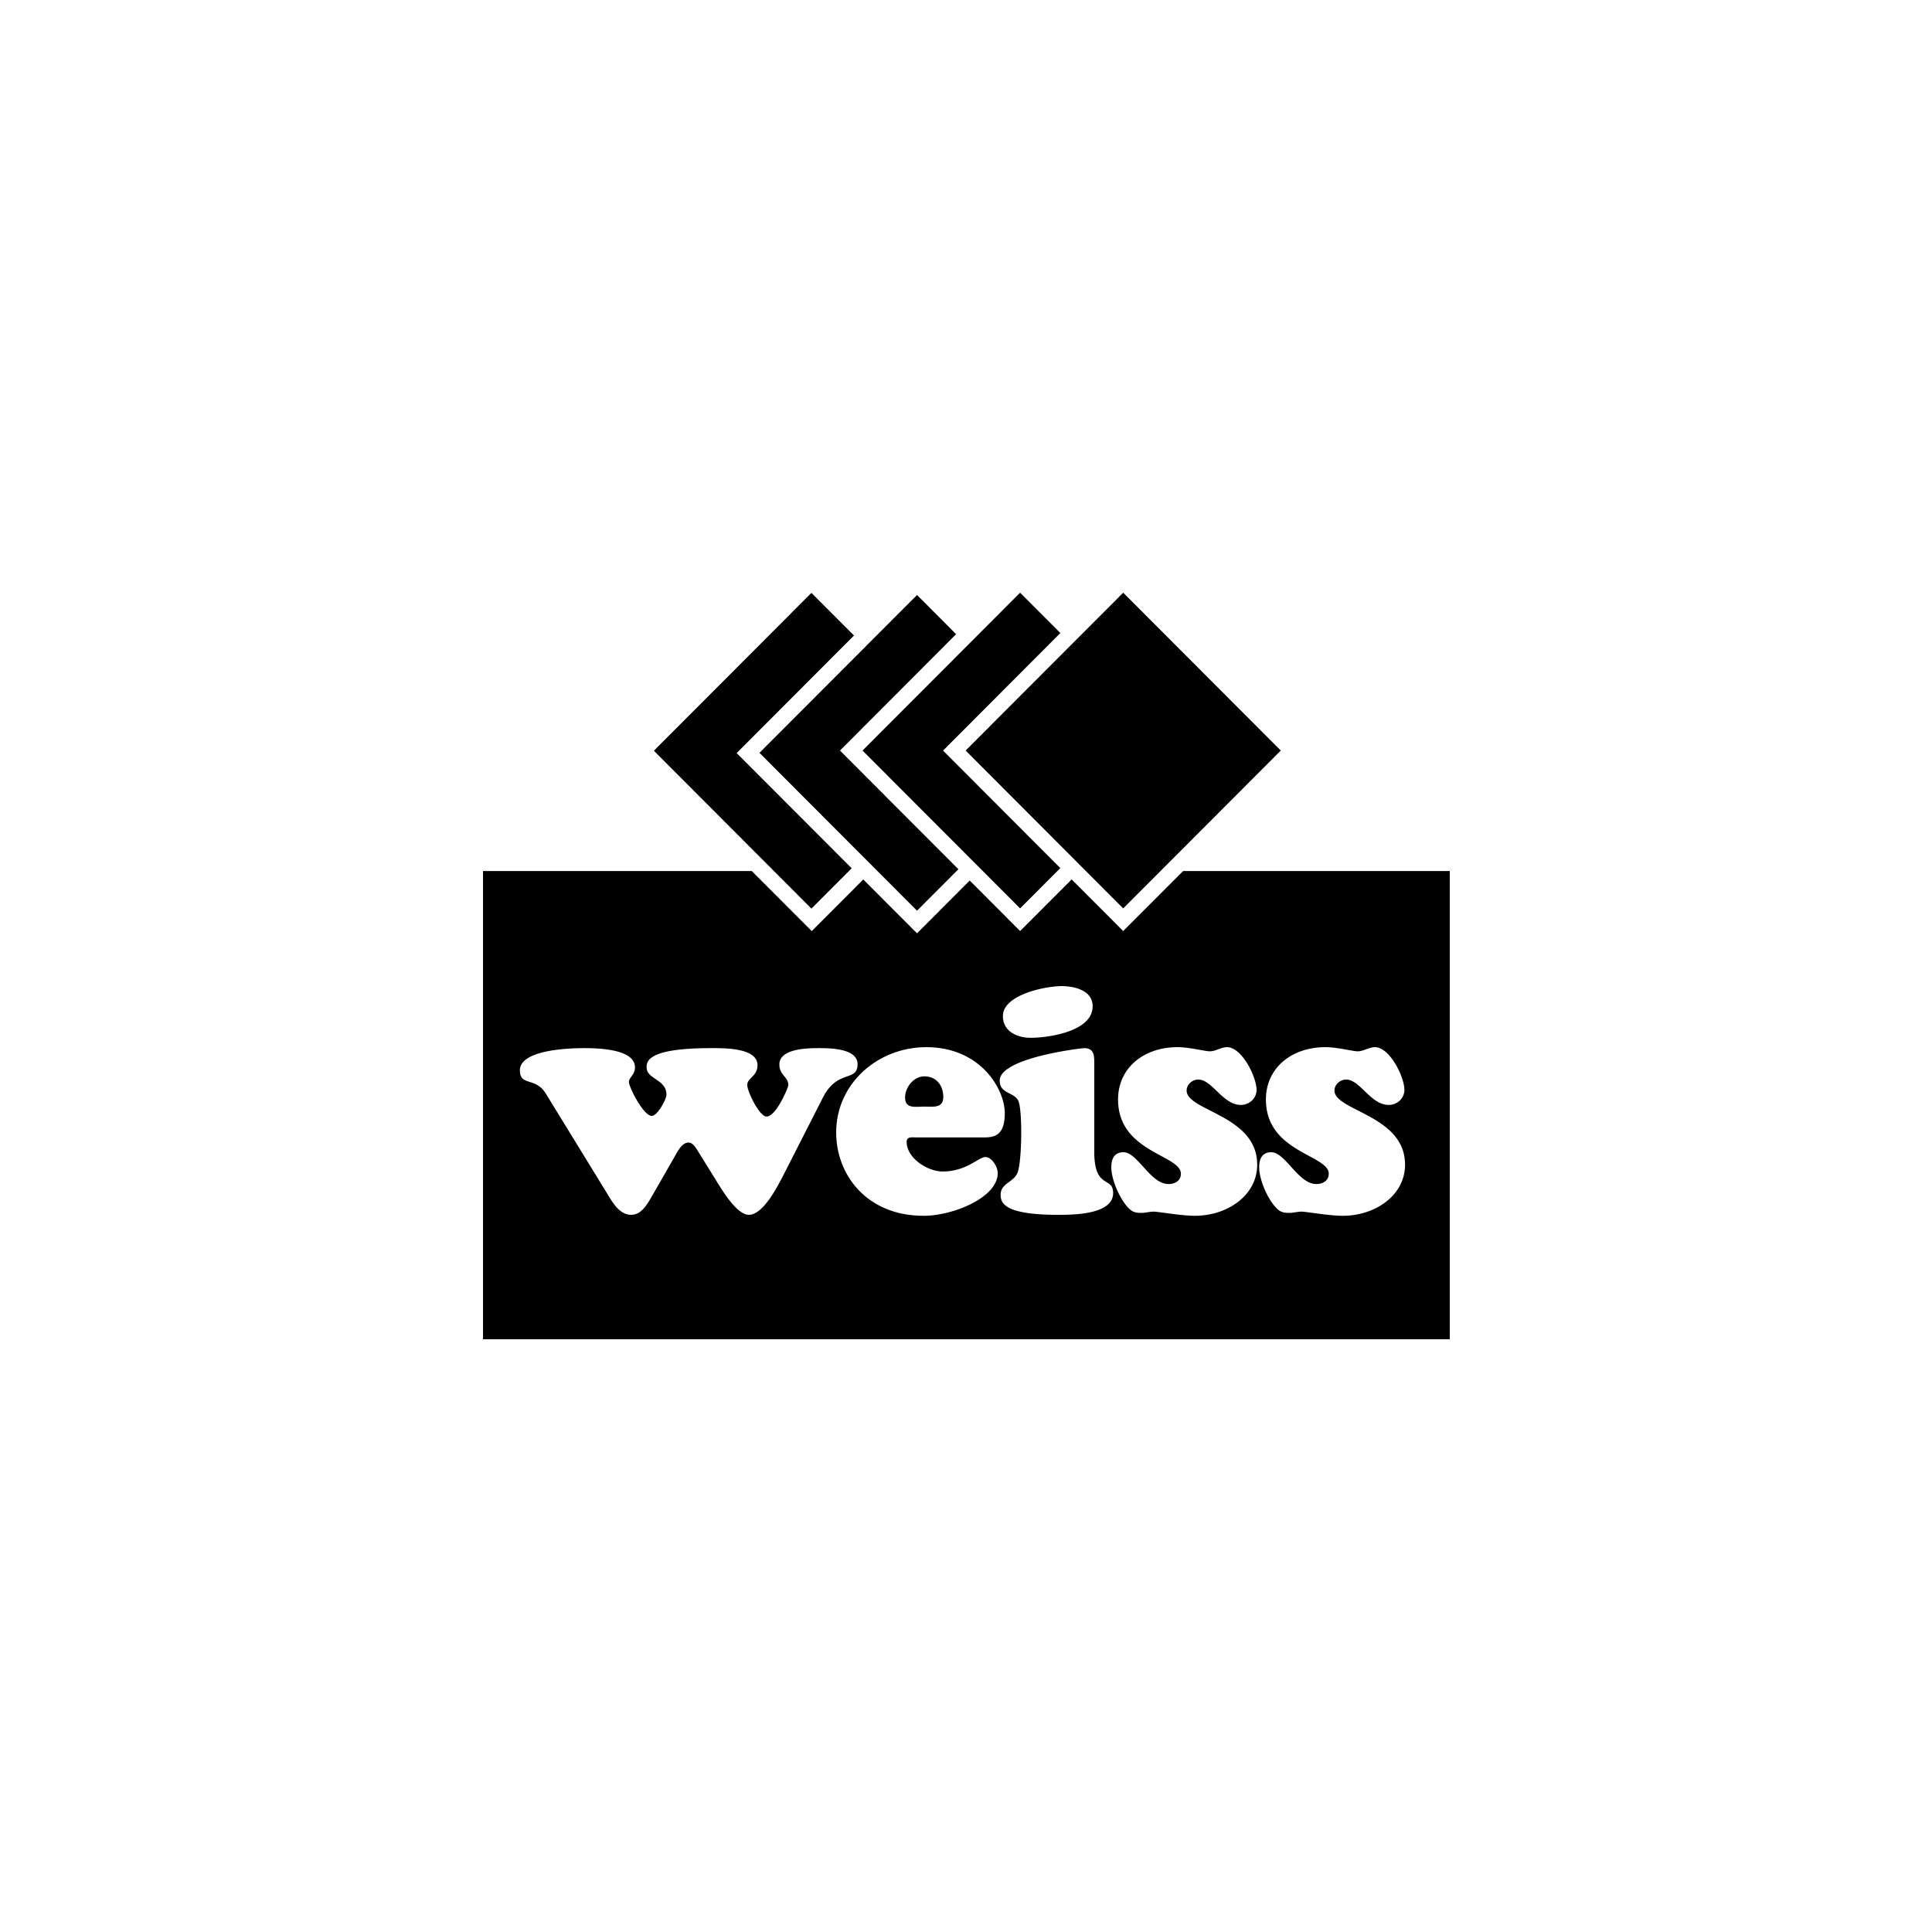 weiss (1).png